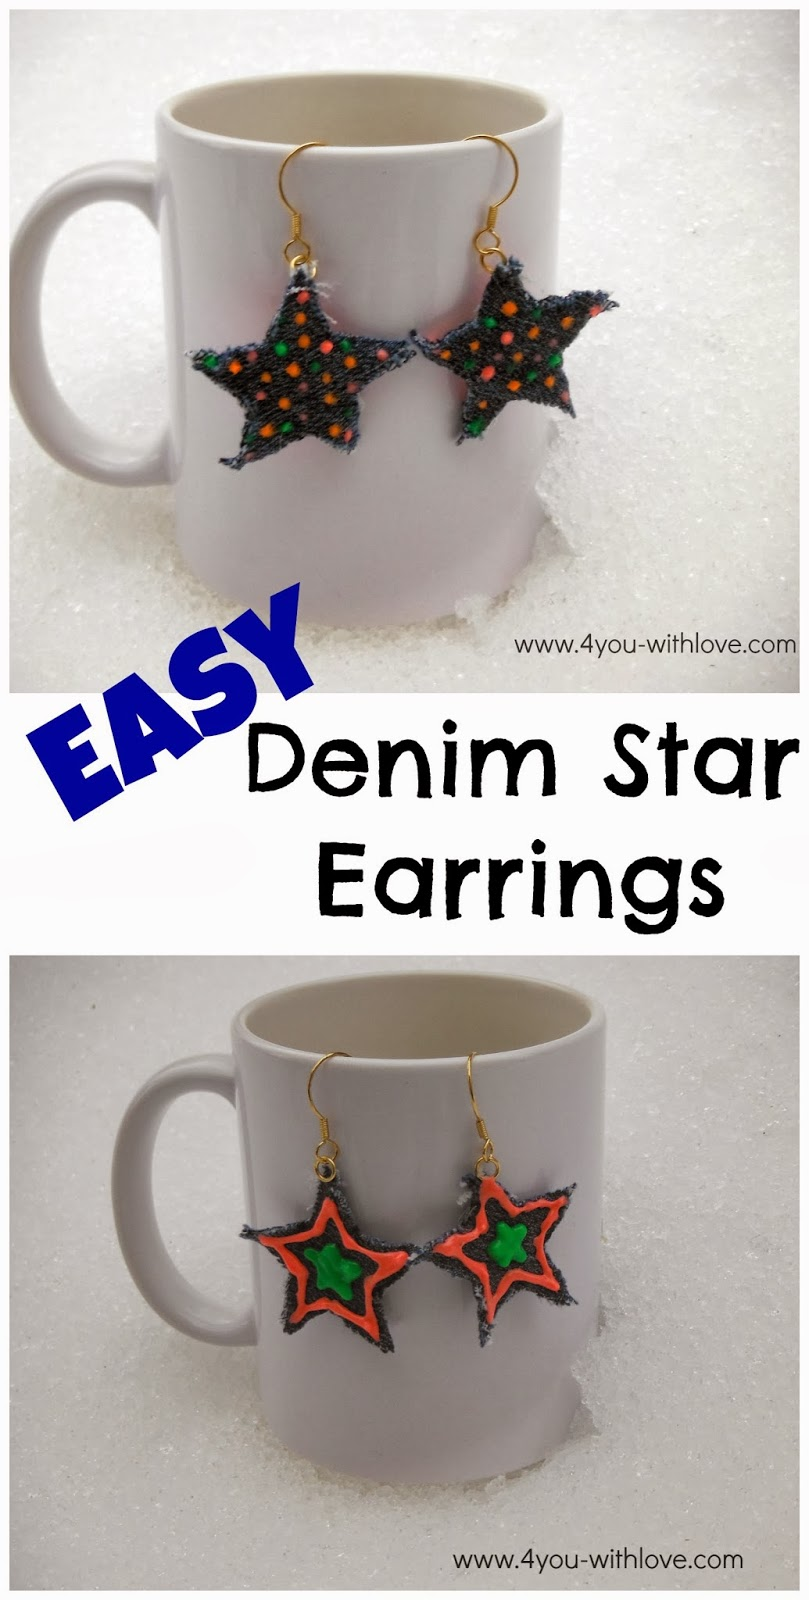 Denim Star Earrings with Tulip Neon Paint